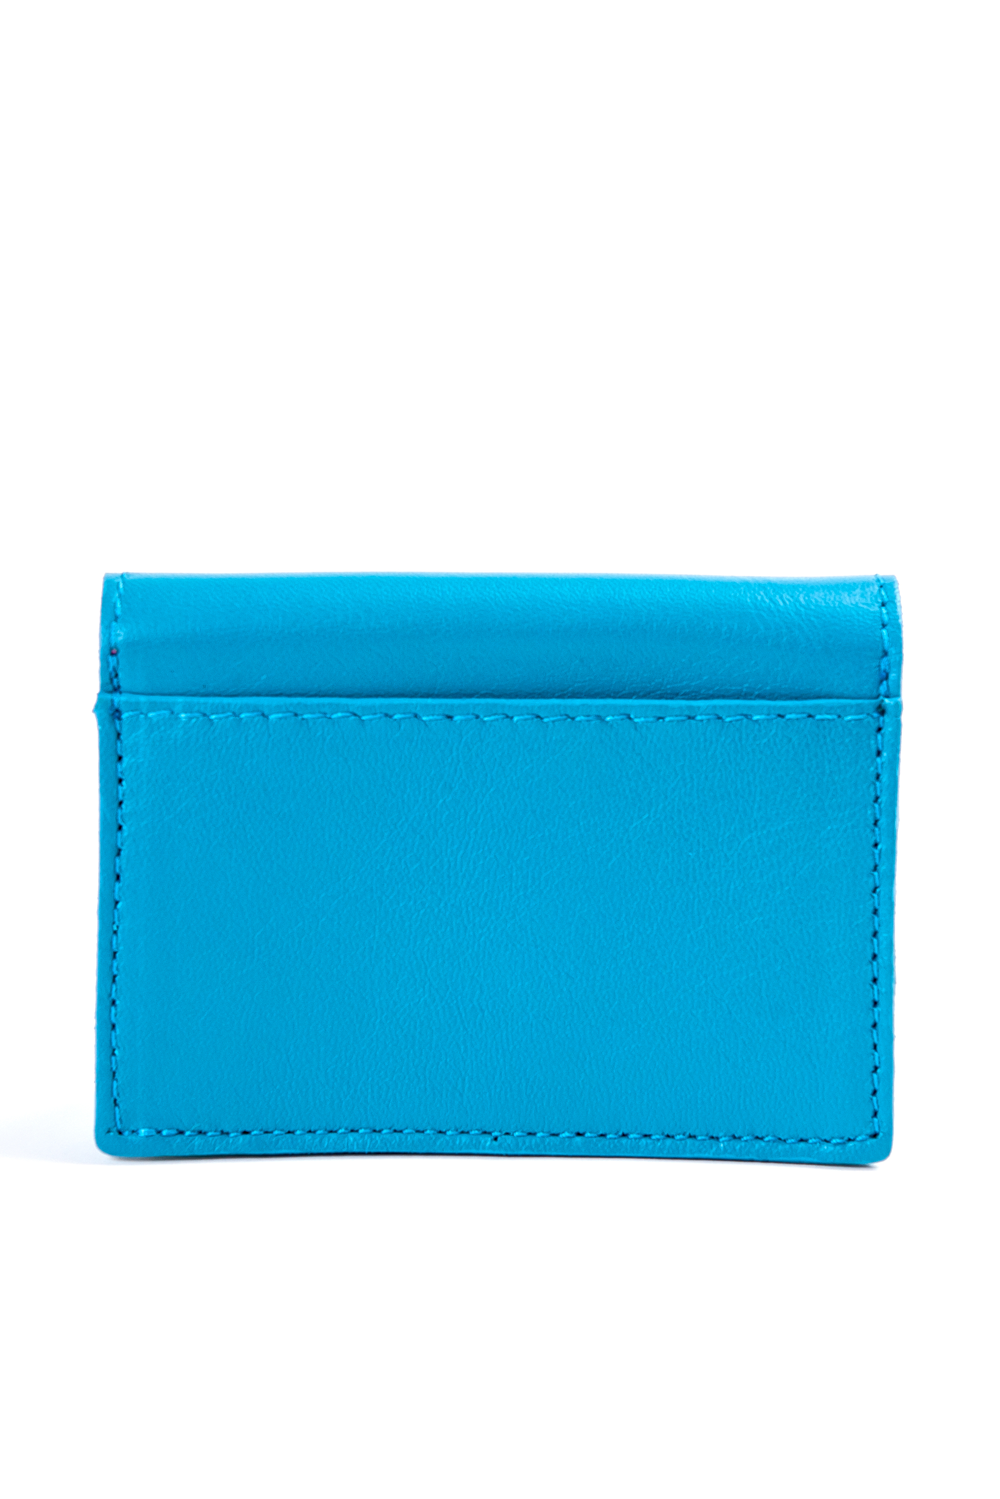 Mel Boteri | 'Nice To Meet You' Cardholder | Turquoise Leather | Back